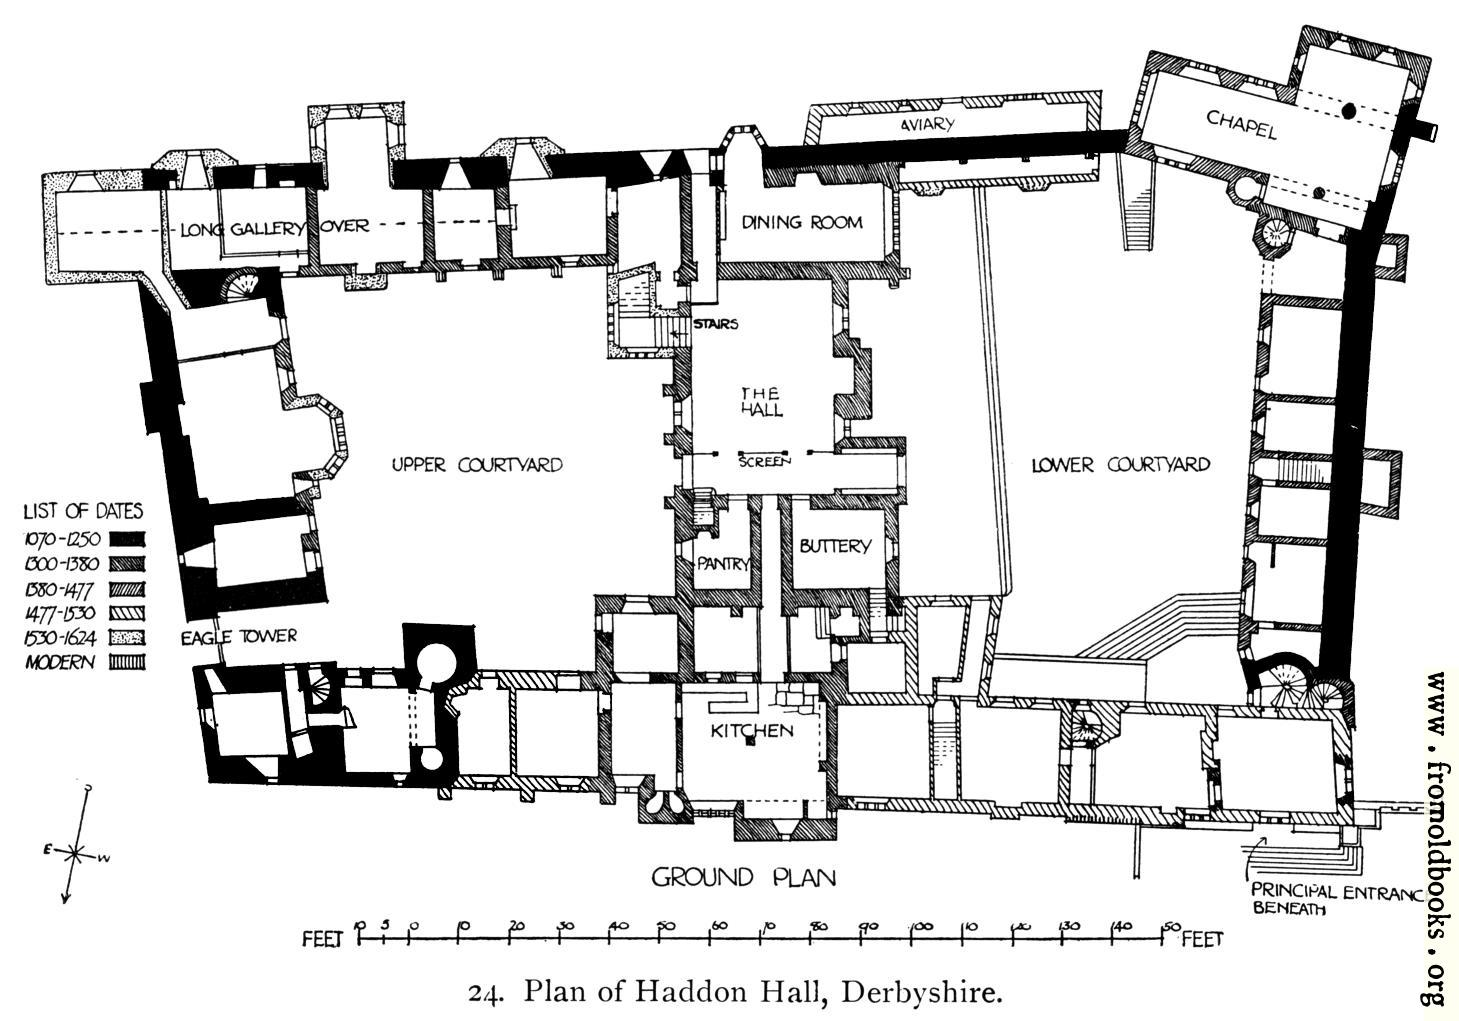 [Picture: 24.  Plan of Haddon Hall, Derbyshire]